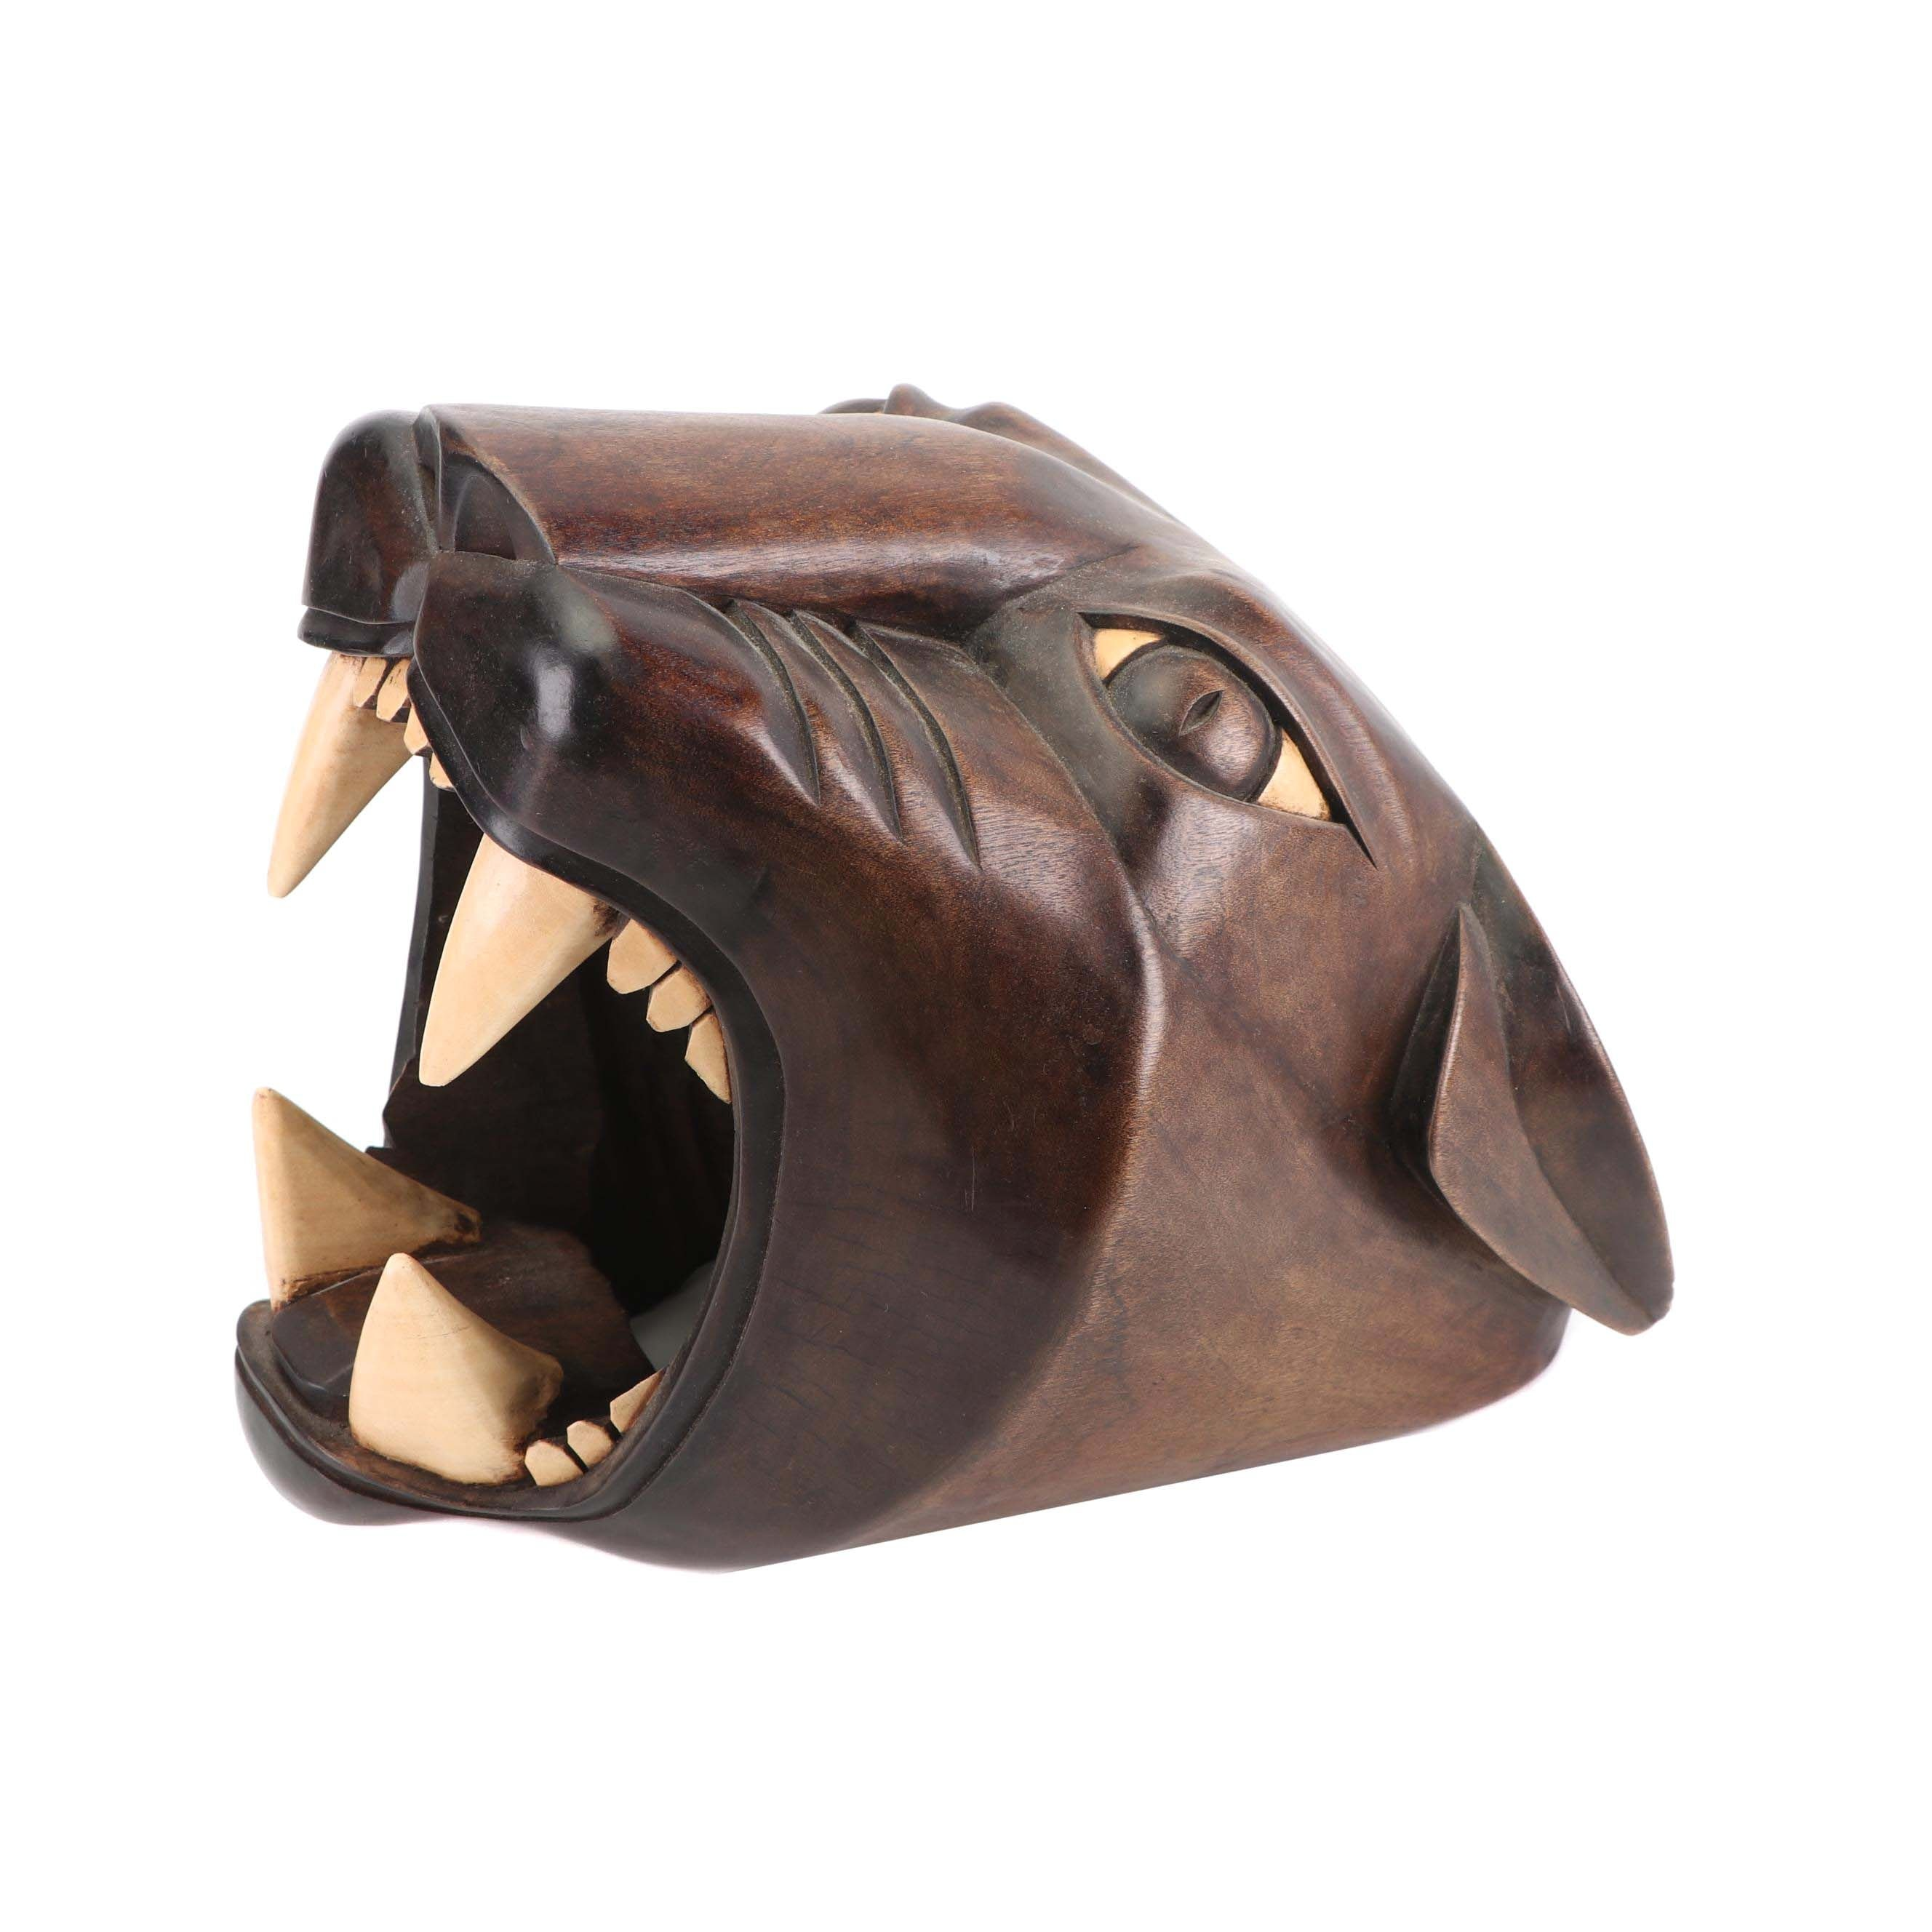 Carved Wood Panther Head